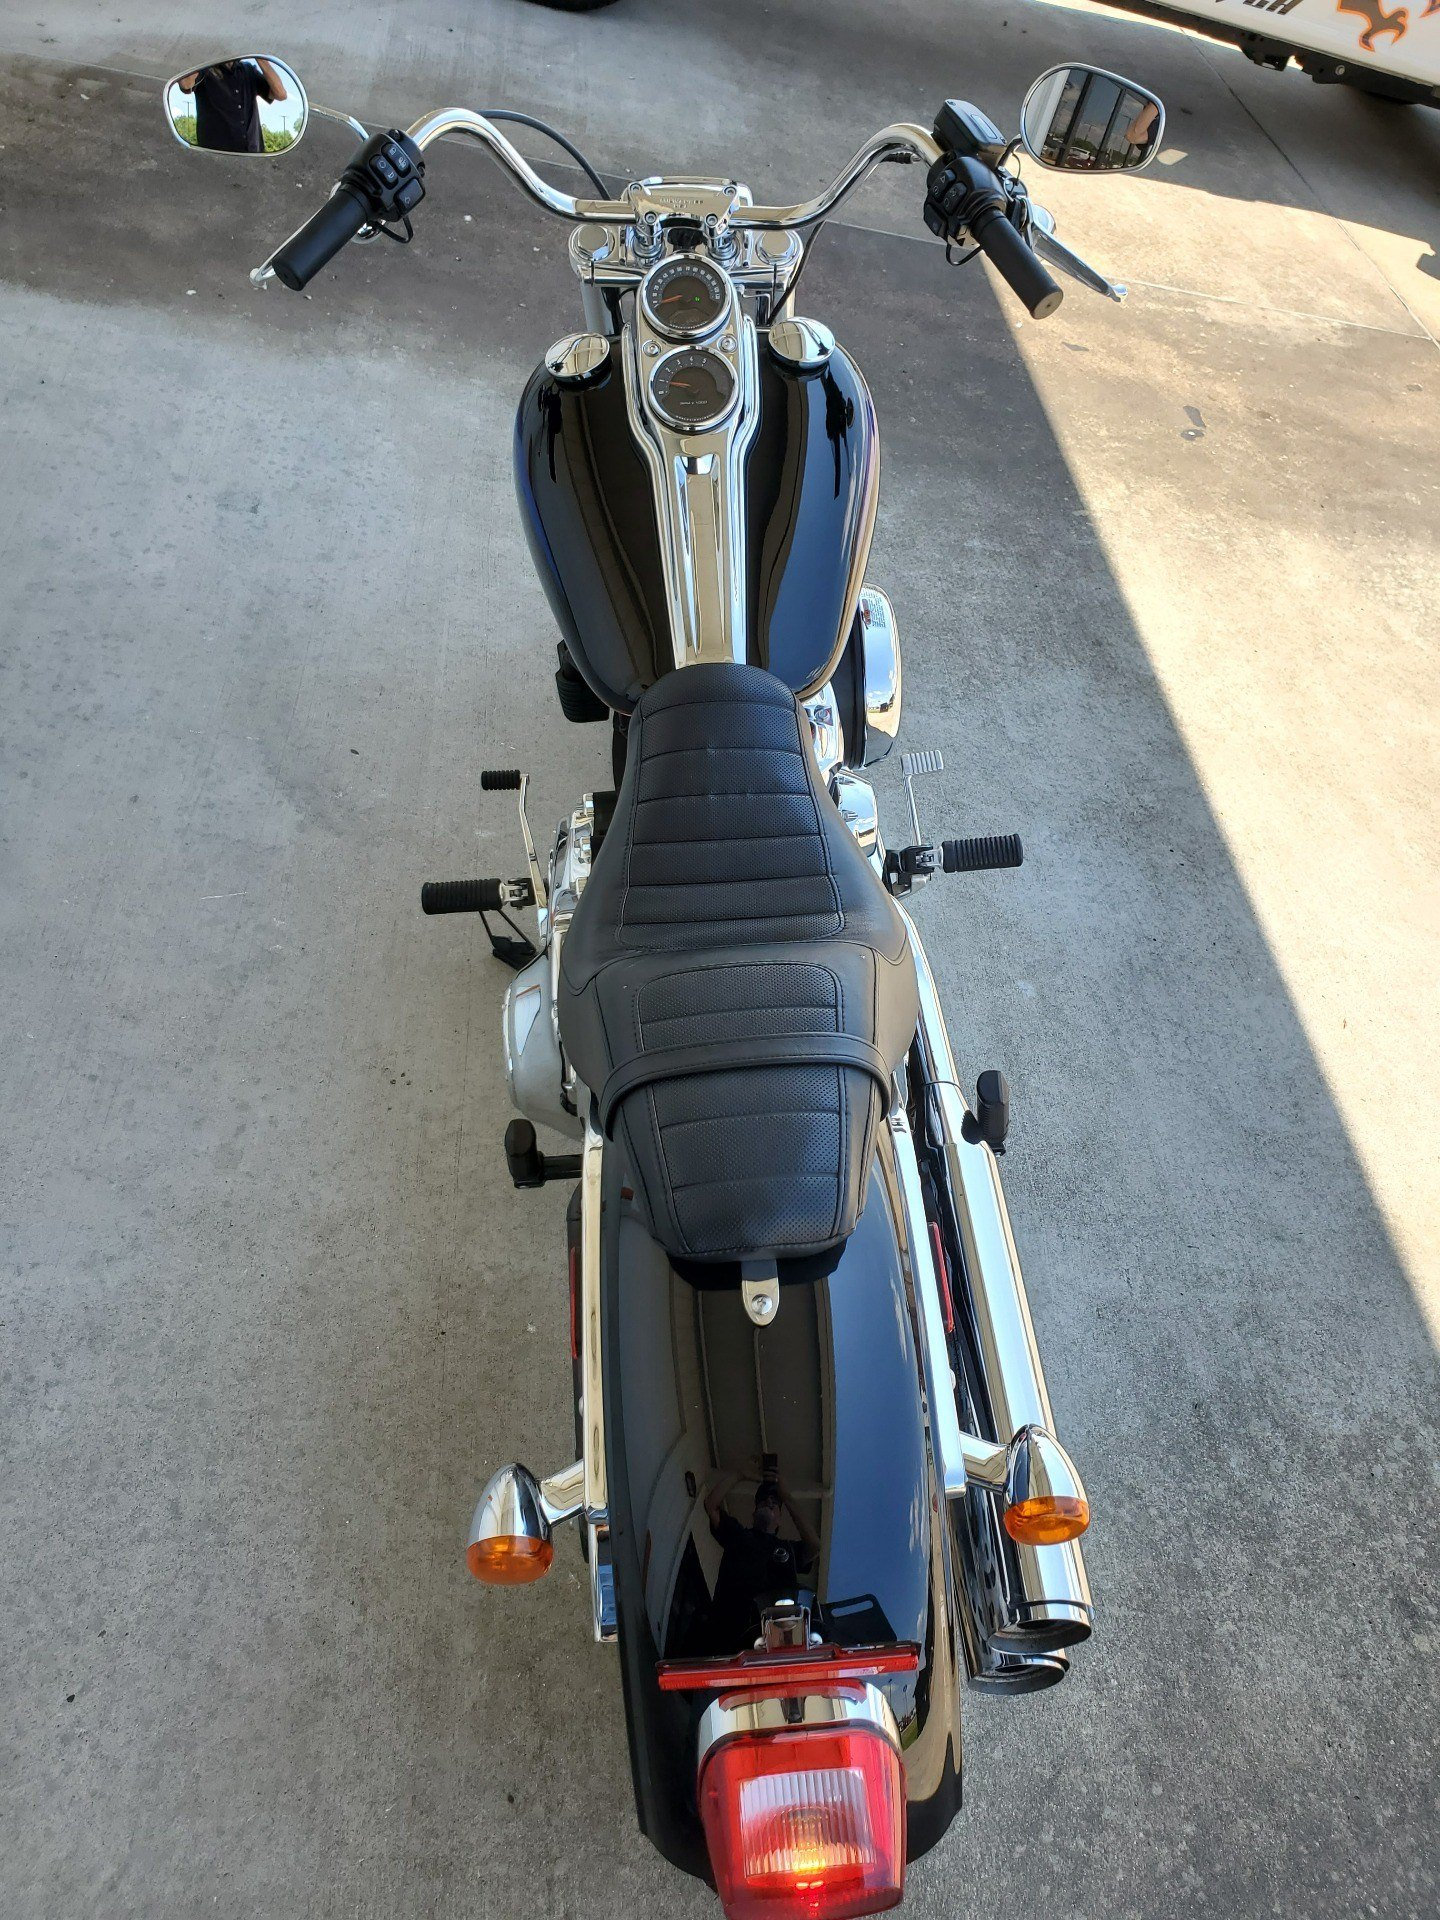 2019 Harley Low Rider for sale near me - Photo 12